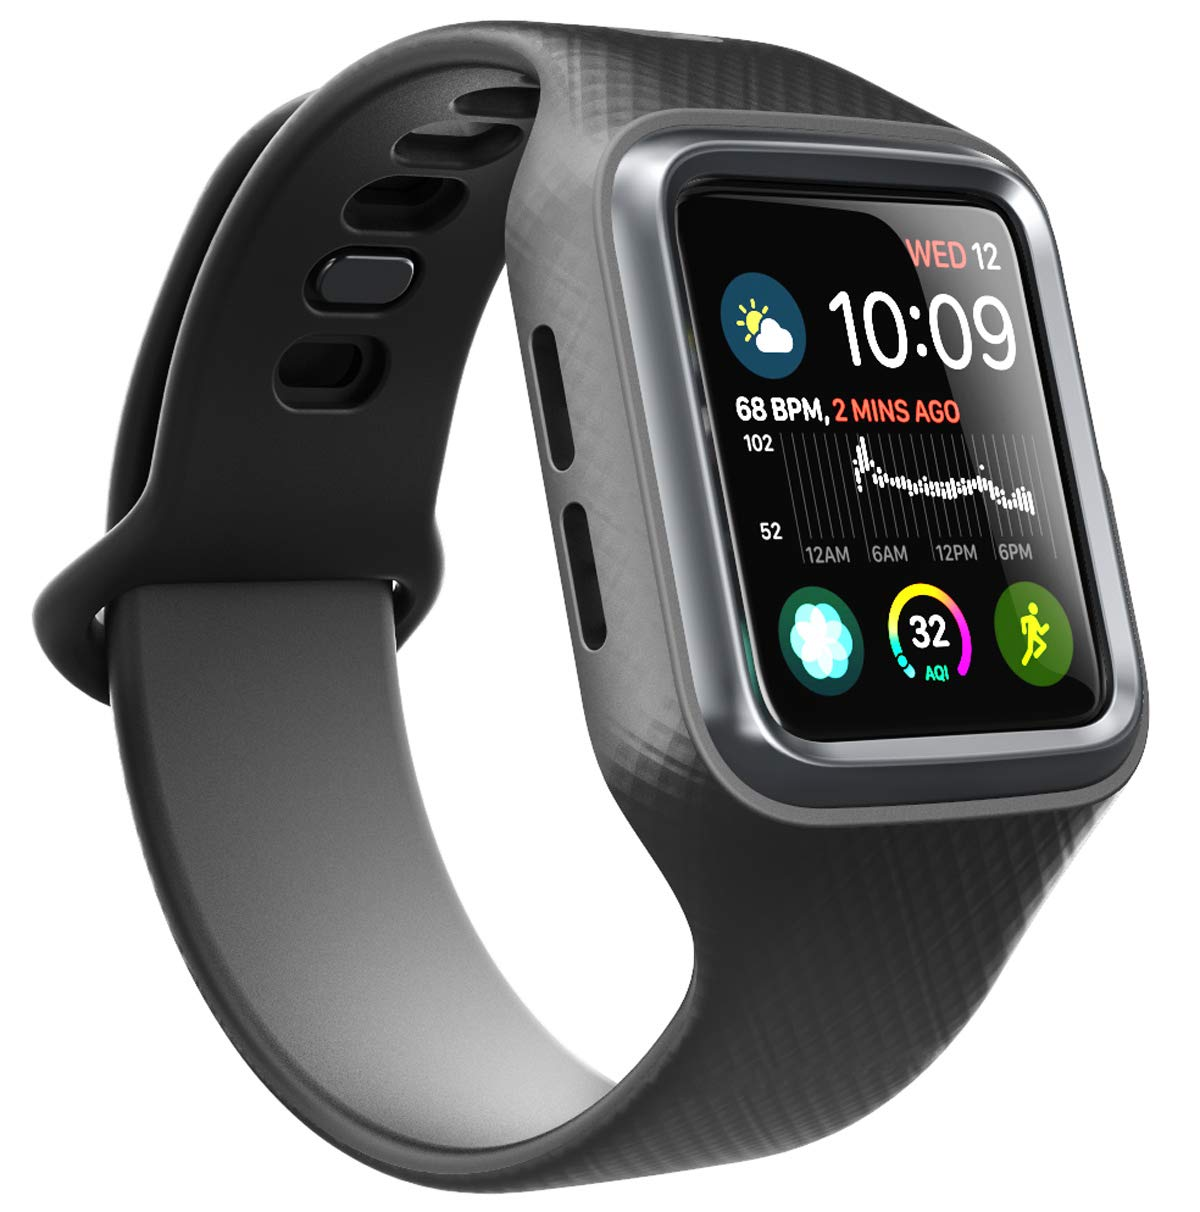 Clayco Apple Watch 4 Band 44mm 2018, [Hera Series] [Updated Version] Shock Resistant Ultra Slim Protective Bumper Case with Strap Bands for 44mm Apple Watch Series 4 (Black) by Clayco